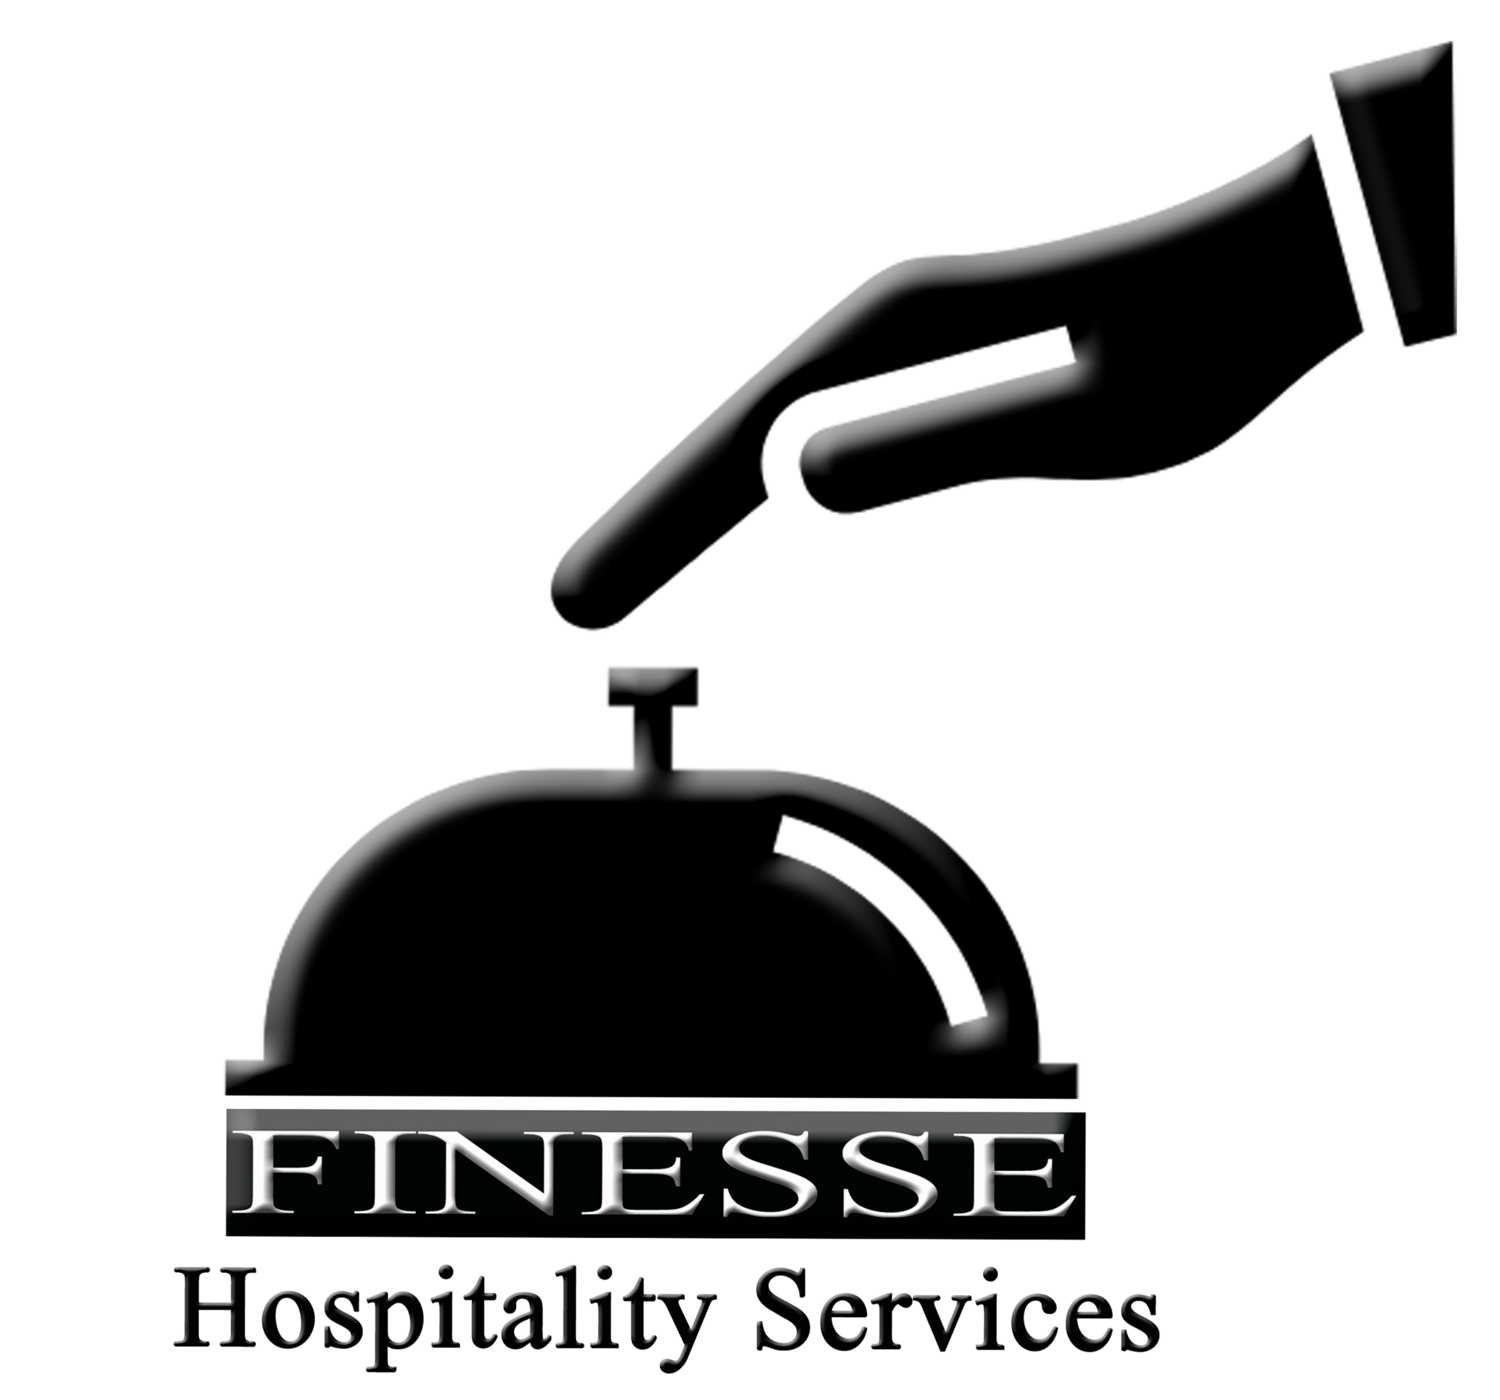 Finesse Hospitality Services